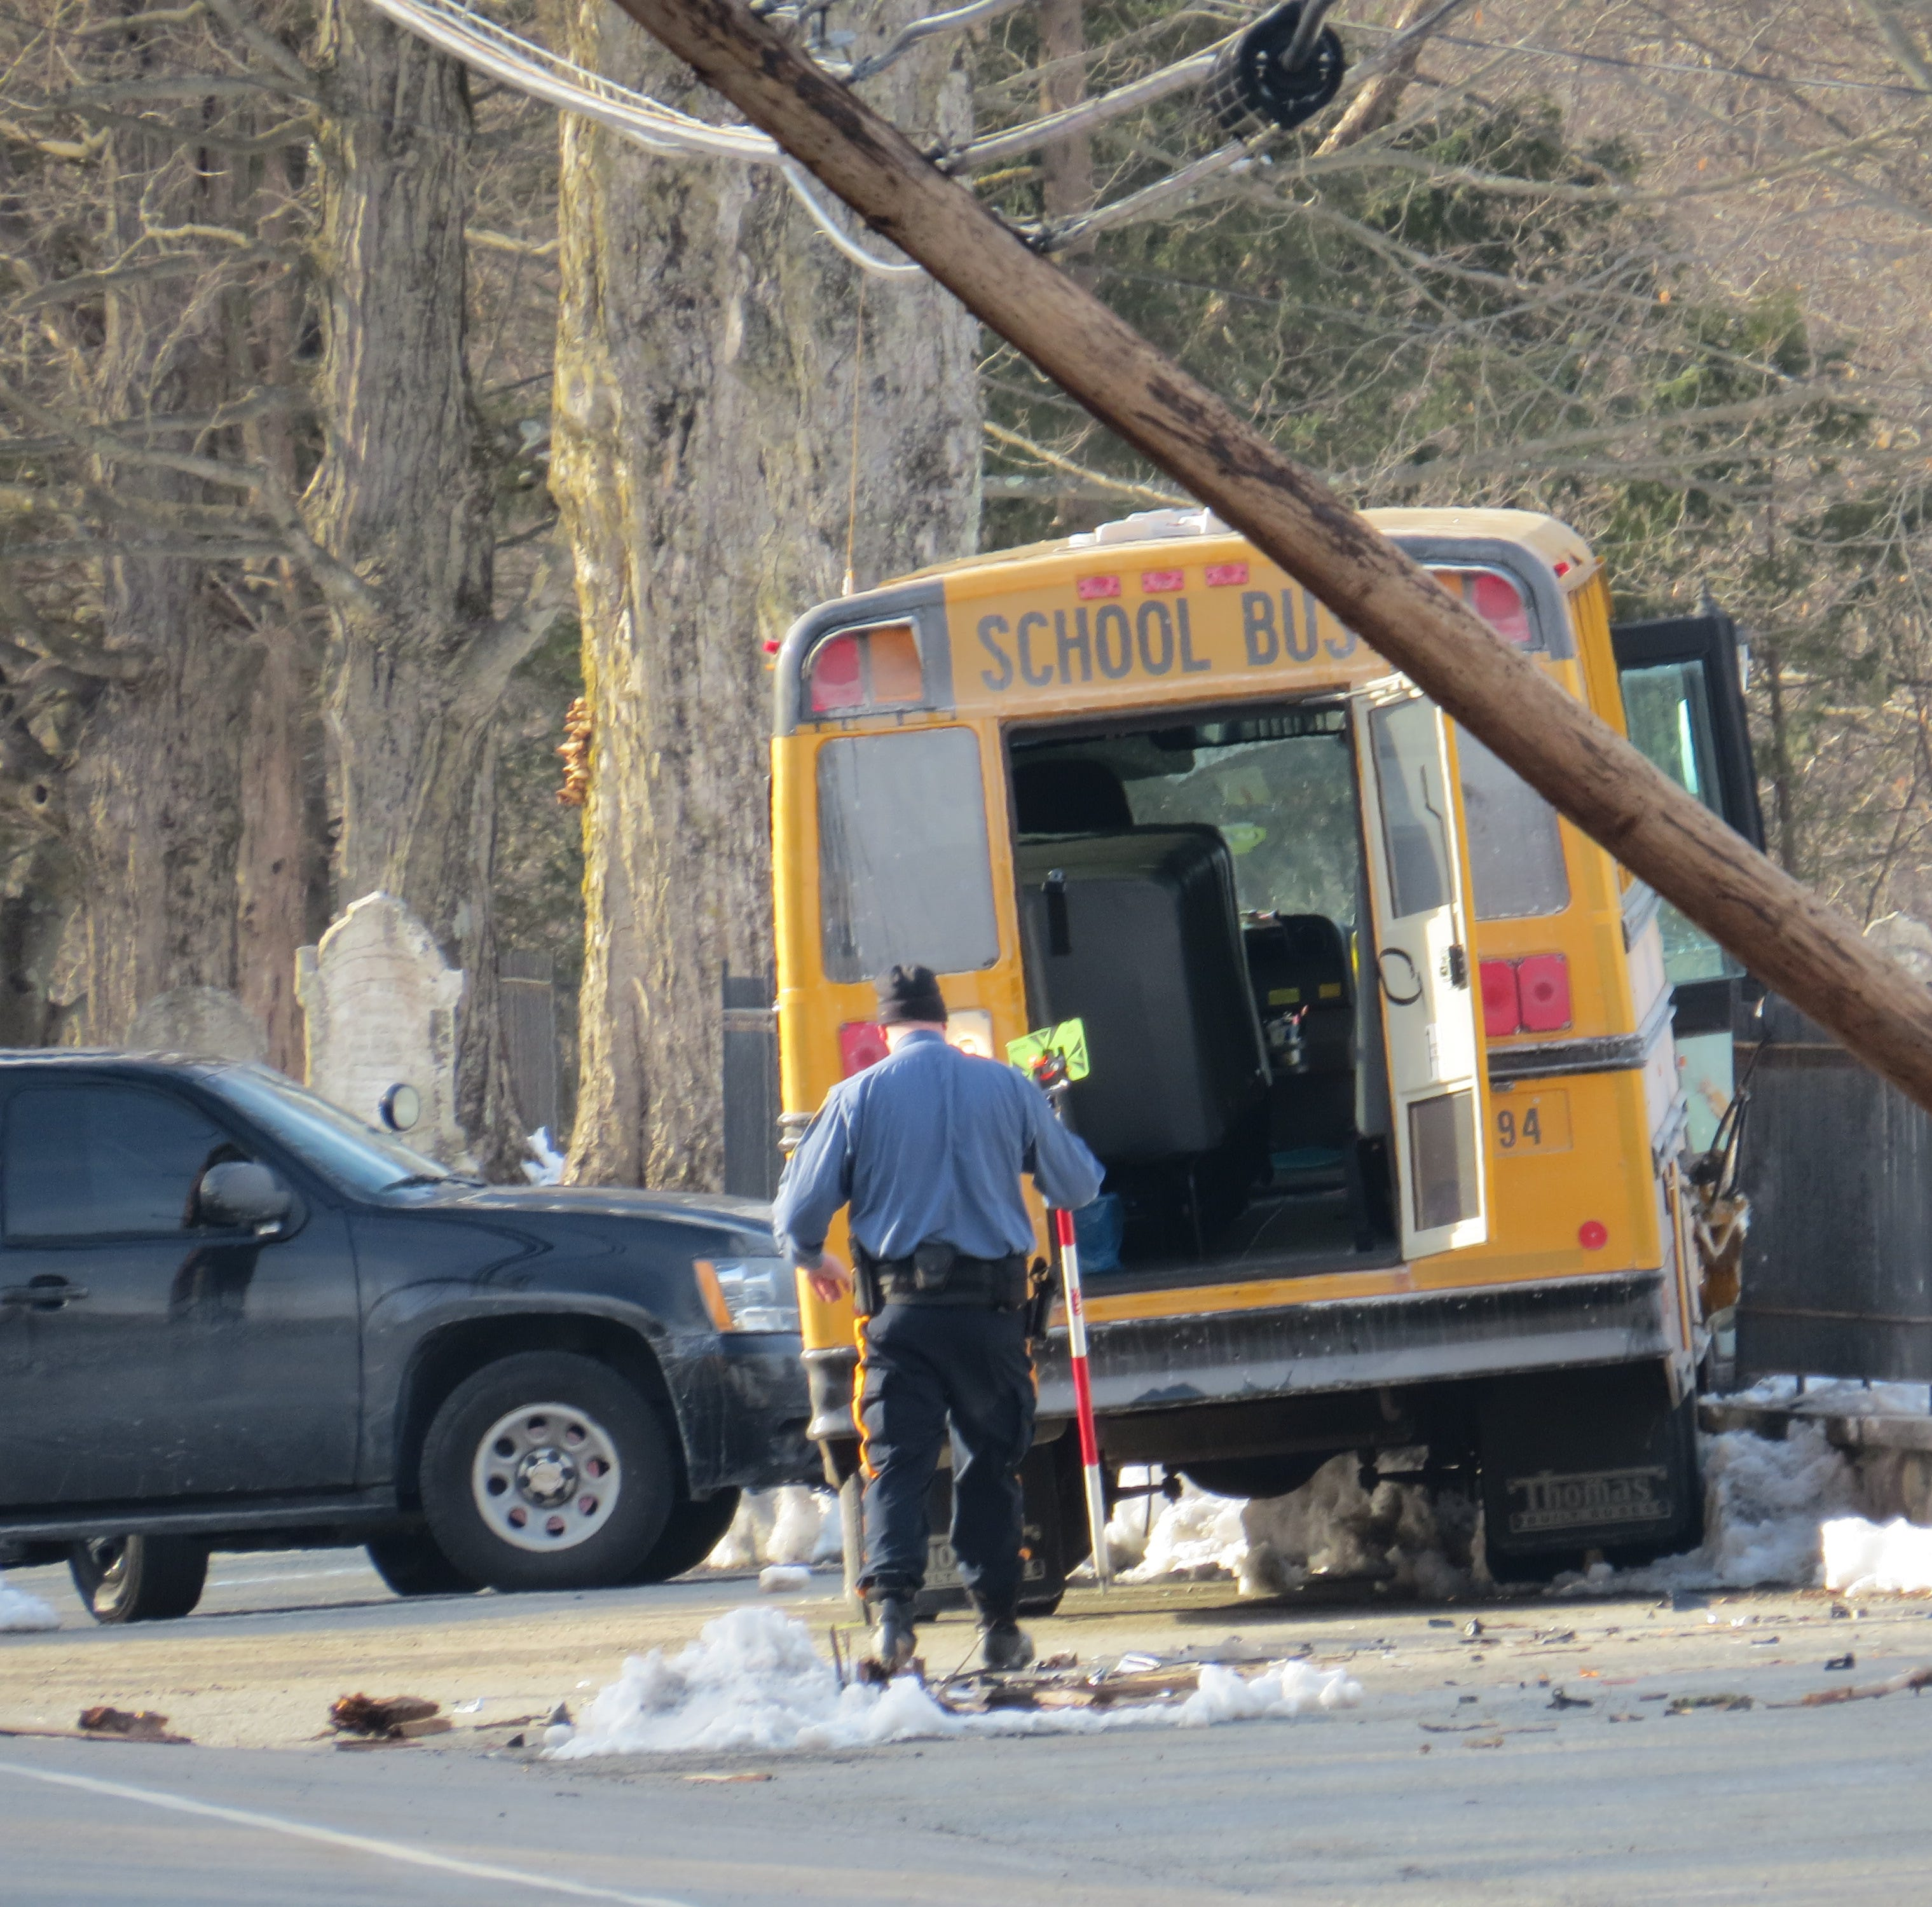 Six students injured; driver in critical condition after Boonton Township school bus crash